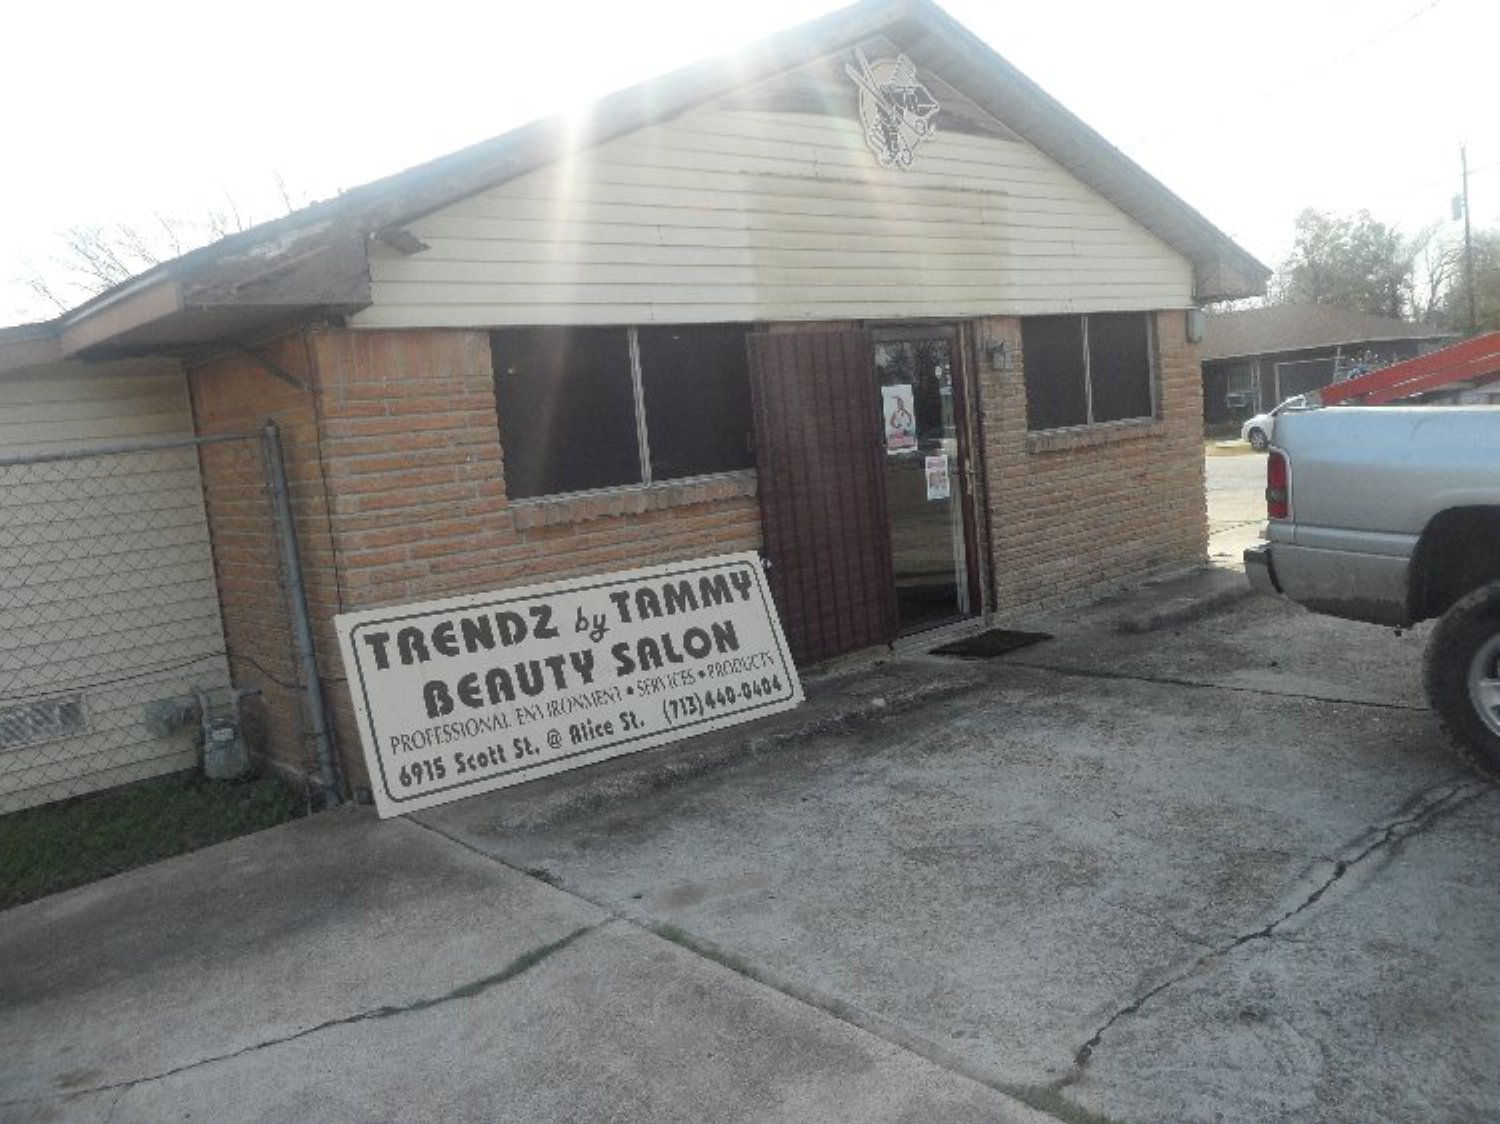 Trendz by Tammy forced to remove business sign after 12 years